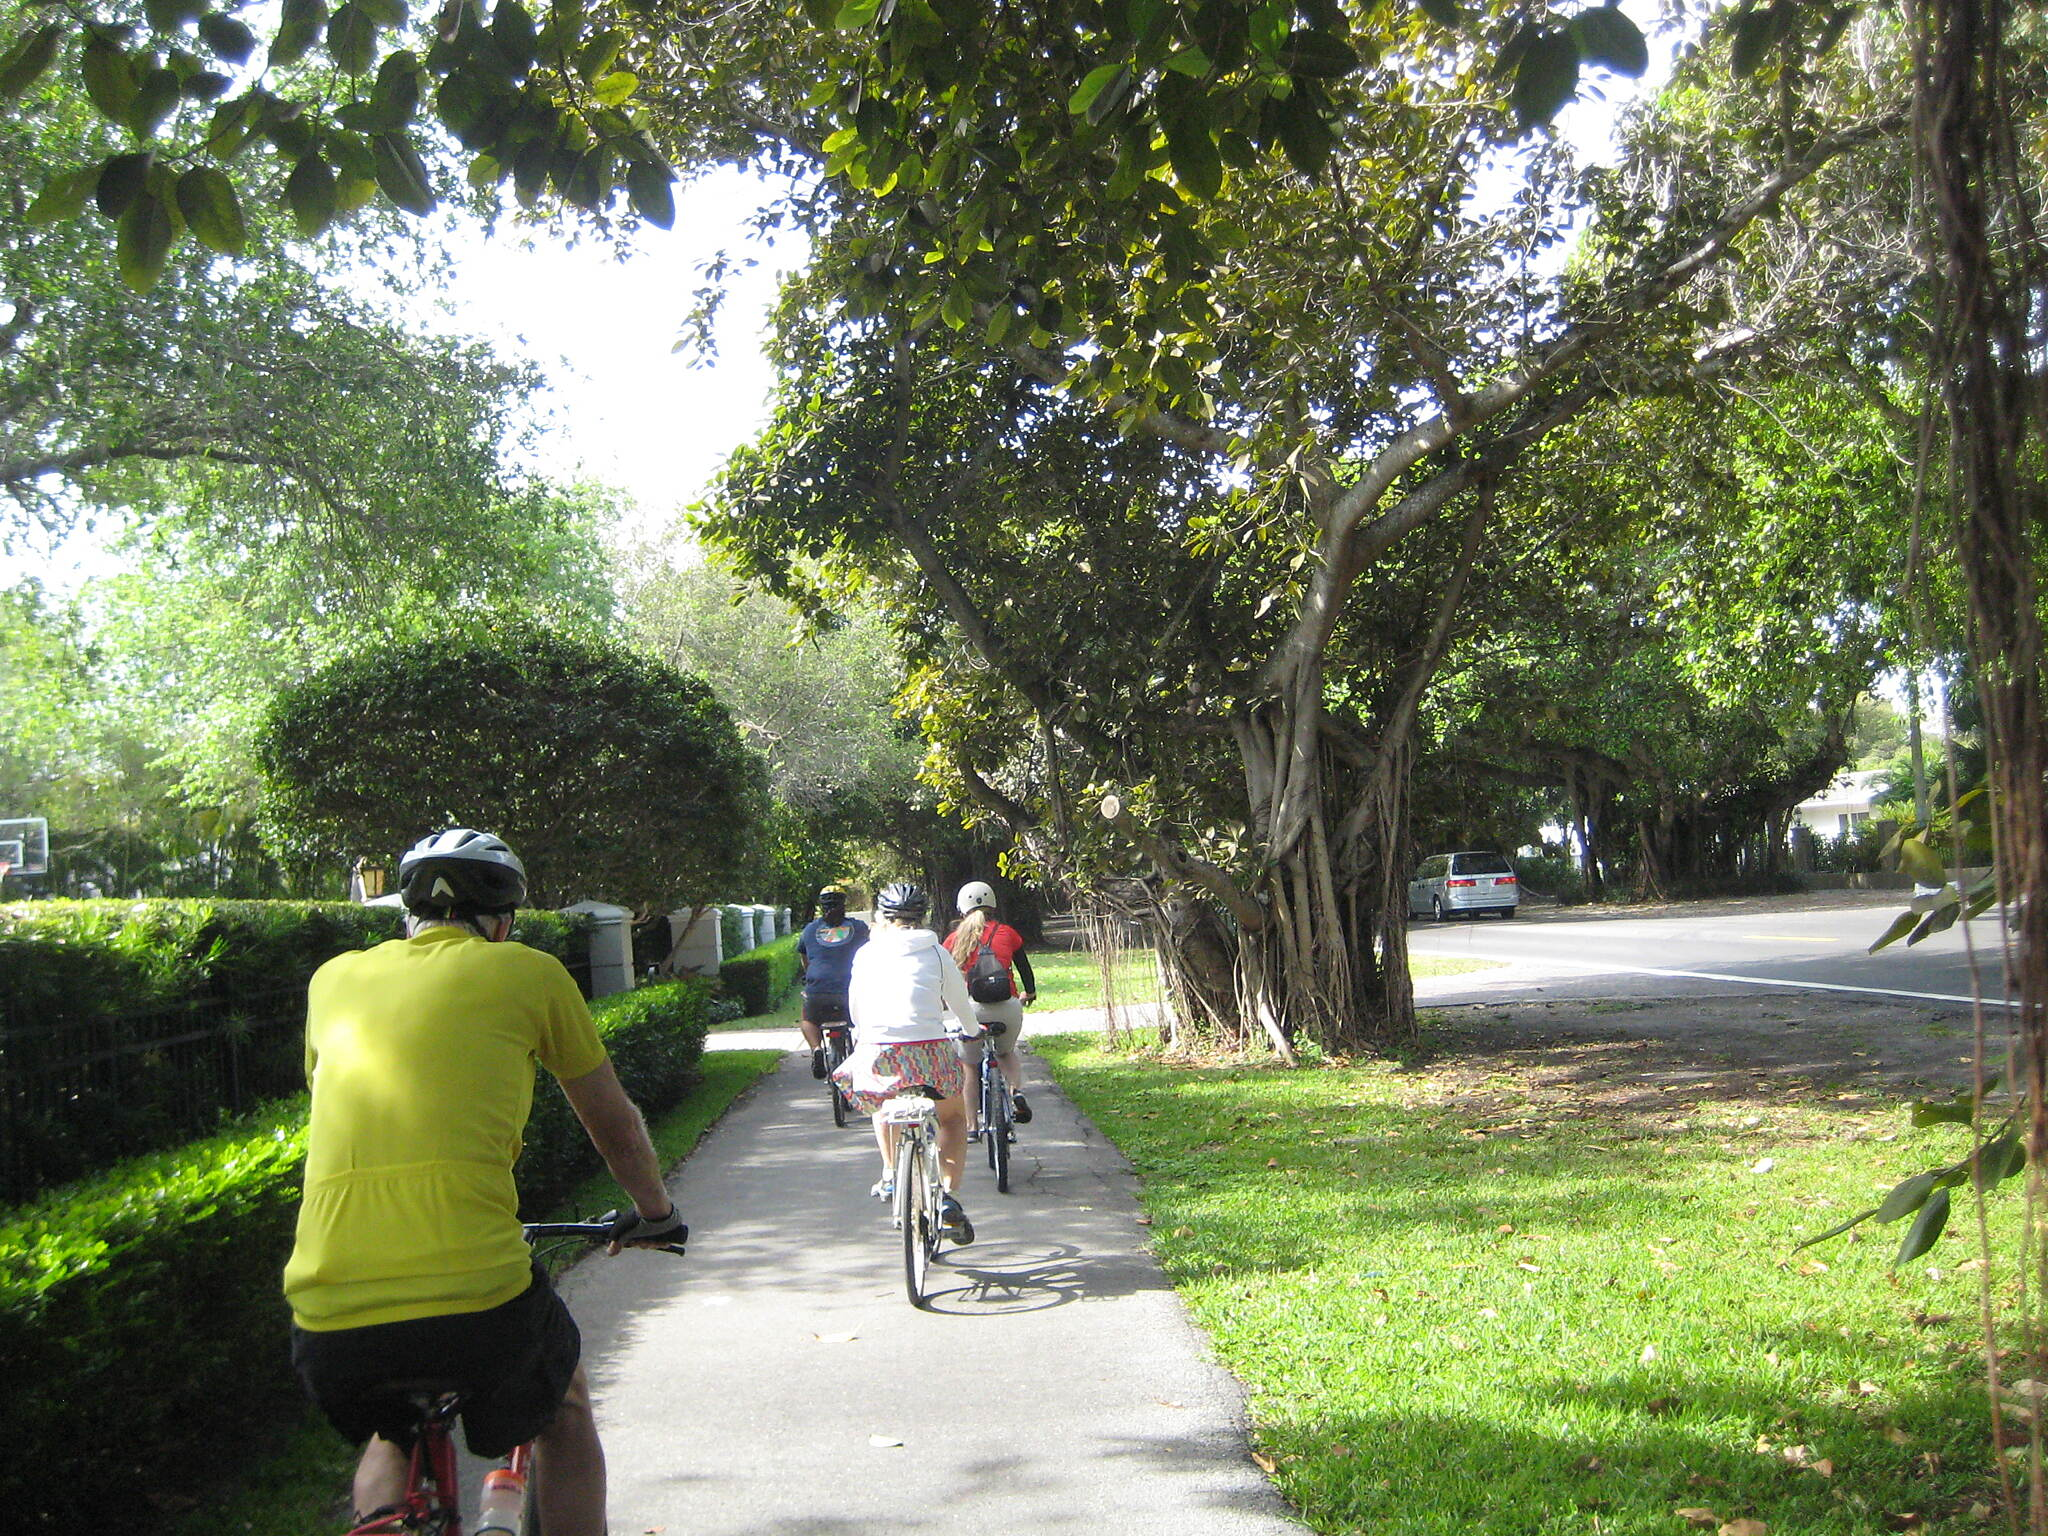 Old Cutler Trail A ride through a tree-lined neighborhood in Coral Gables.